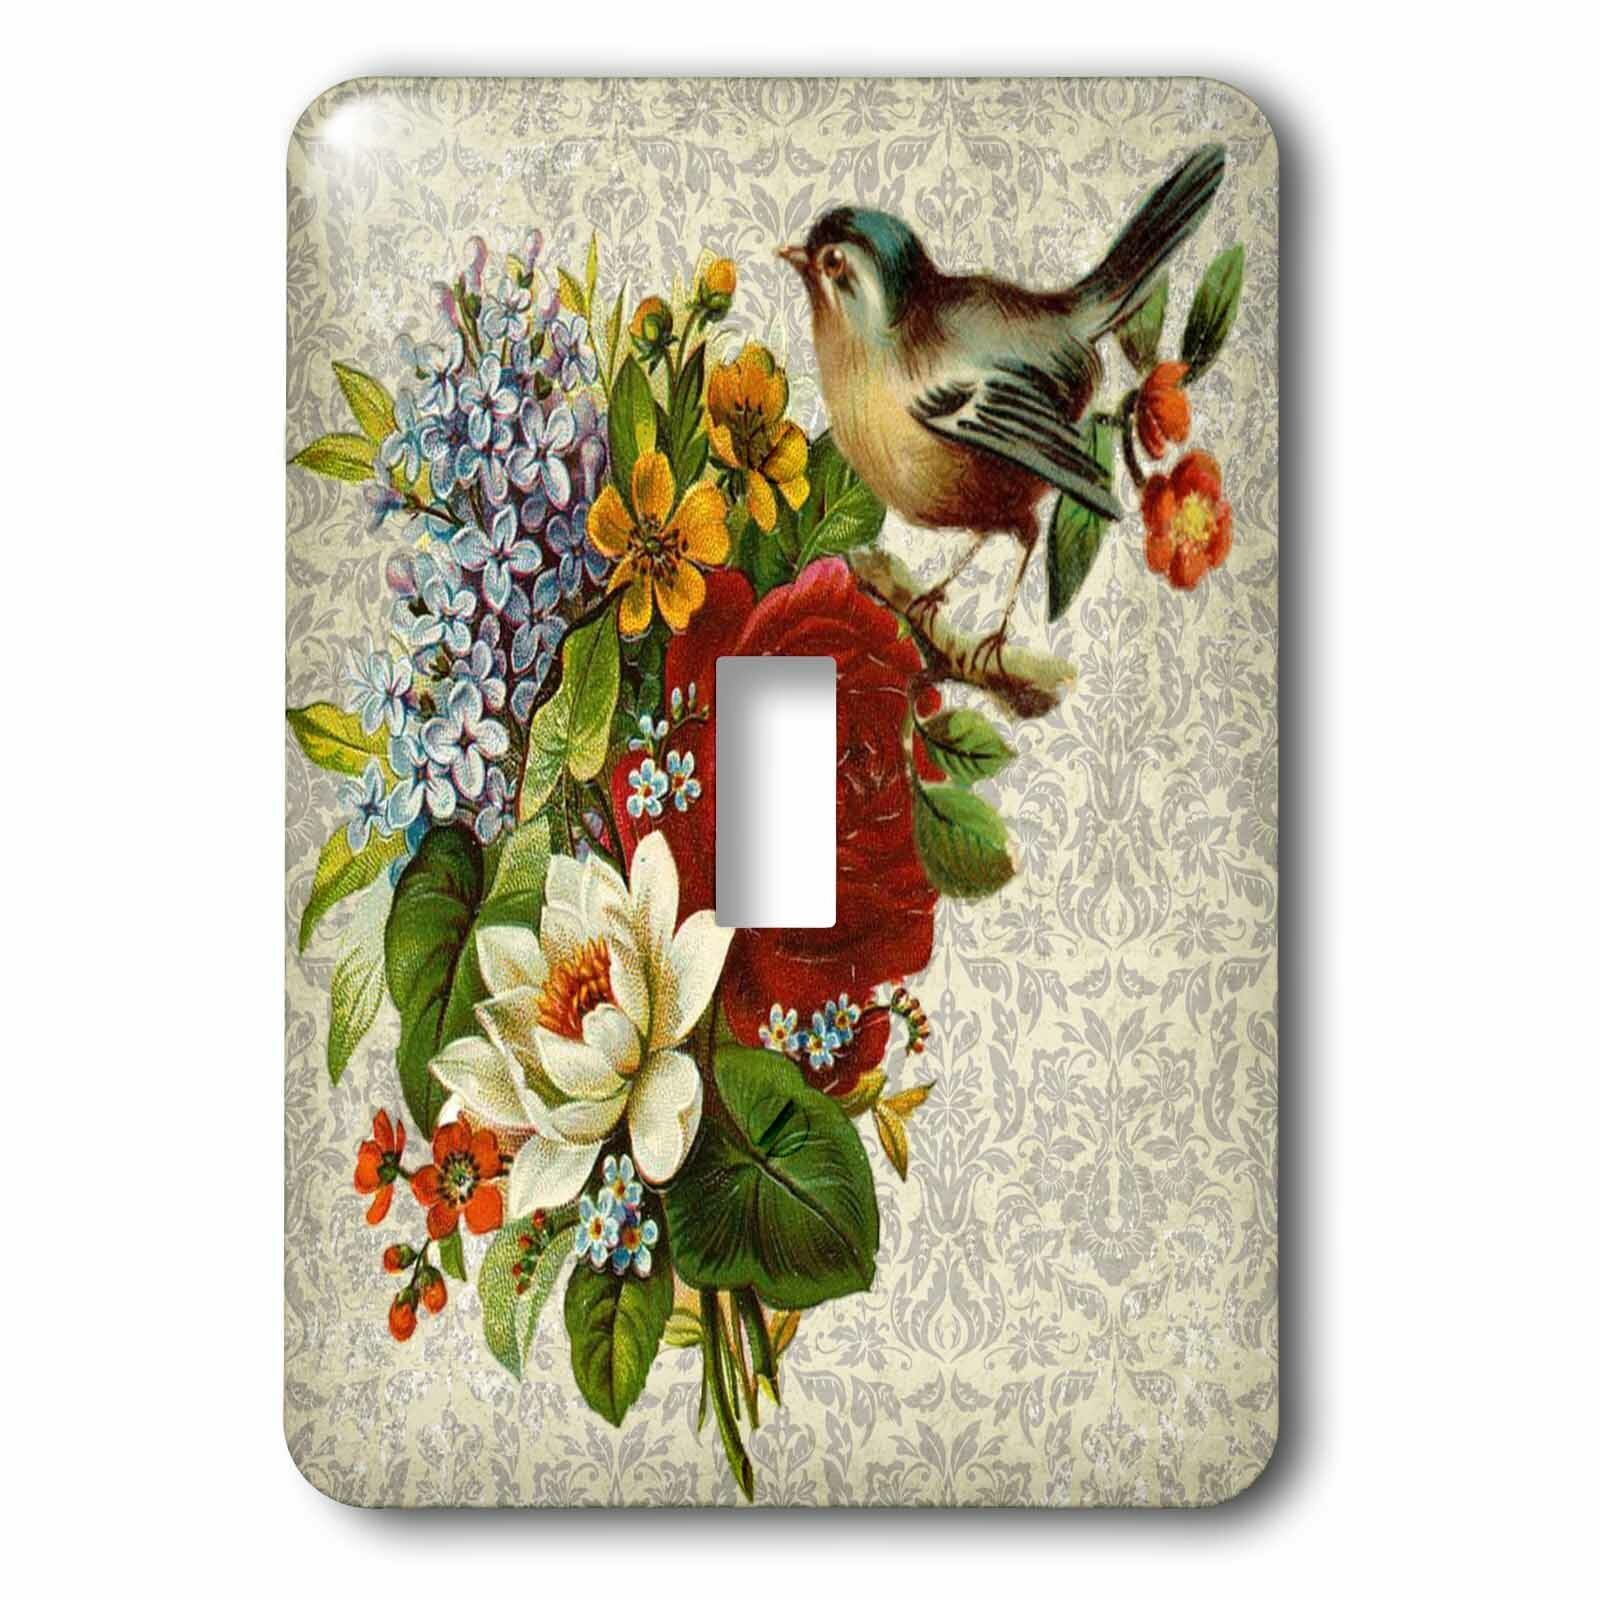 3drose Flowers With Bird 1 Gang Toggle Light Switch Wall Plate Wayfair